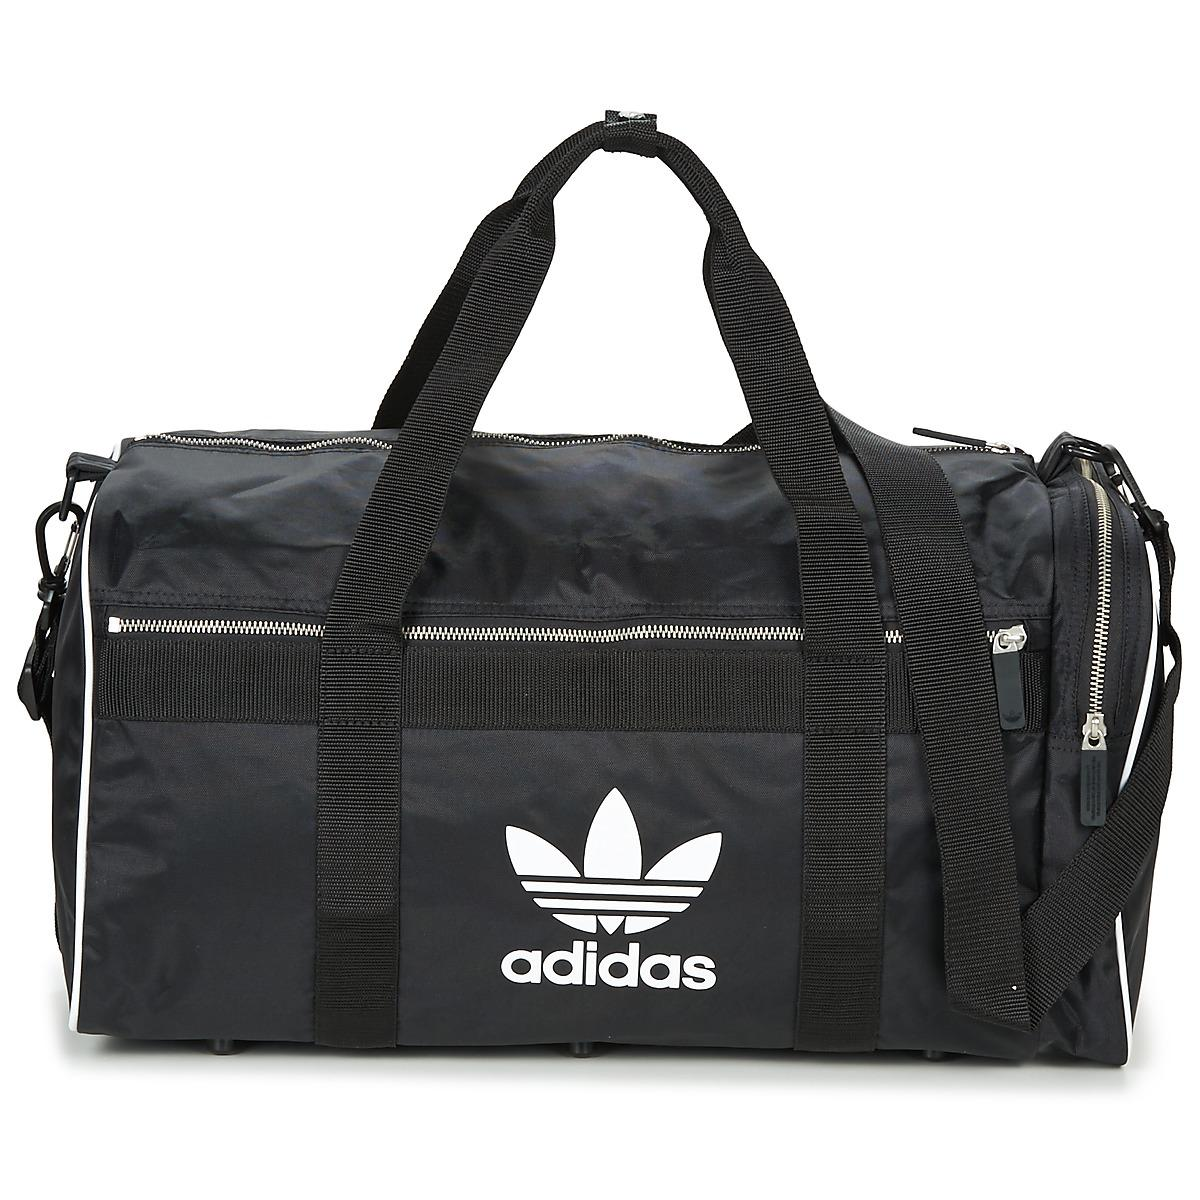 3db44325c6 Adidas - Duffle Large Women s Sports Bag In Black for Men - Lyst. View  fullscreen